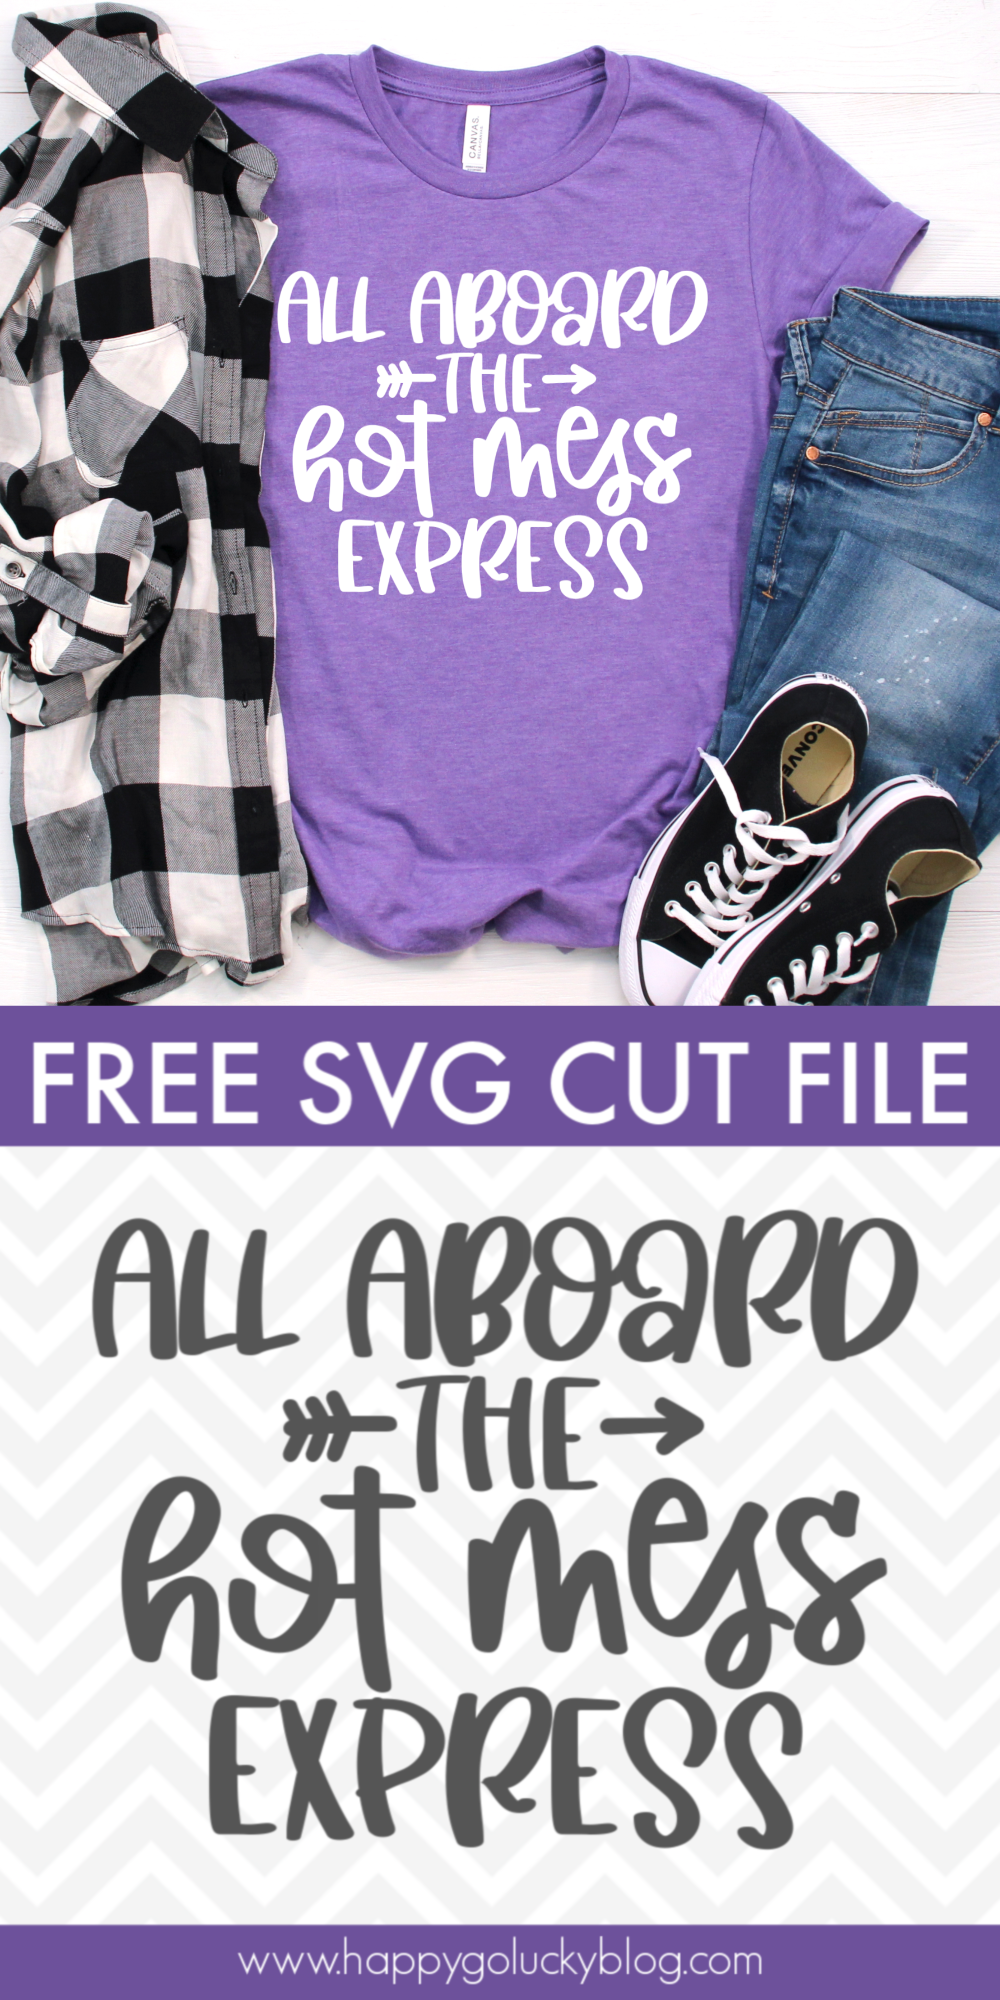 All Aboard the Hot Mess Express Free SVG Cut File